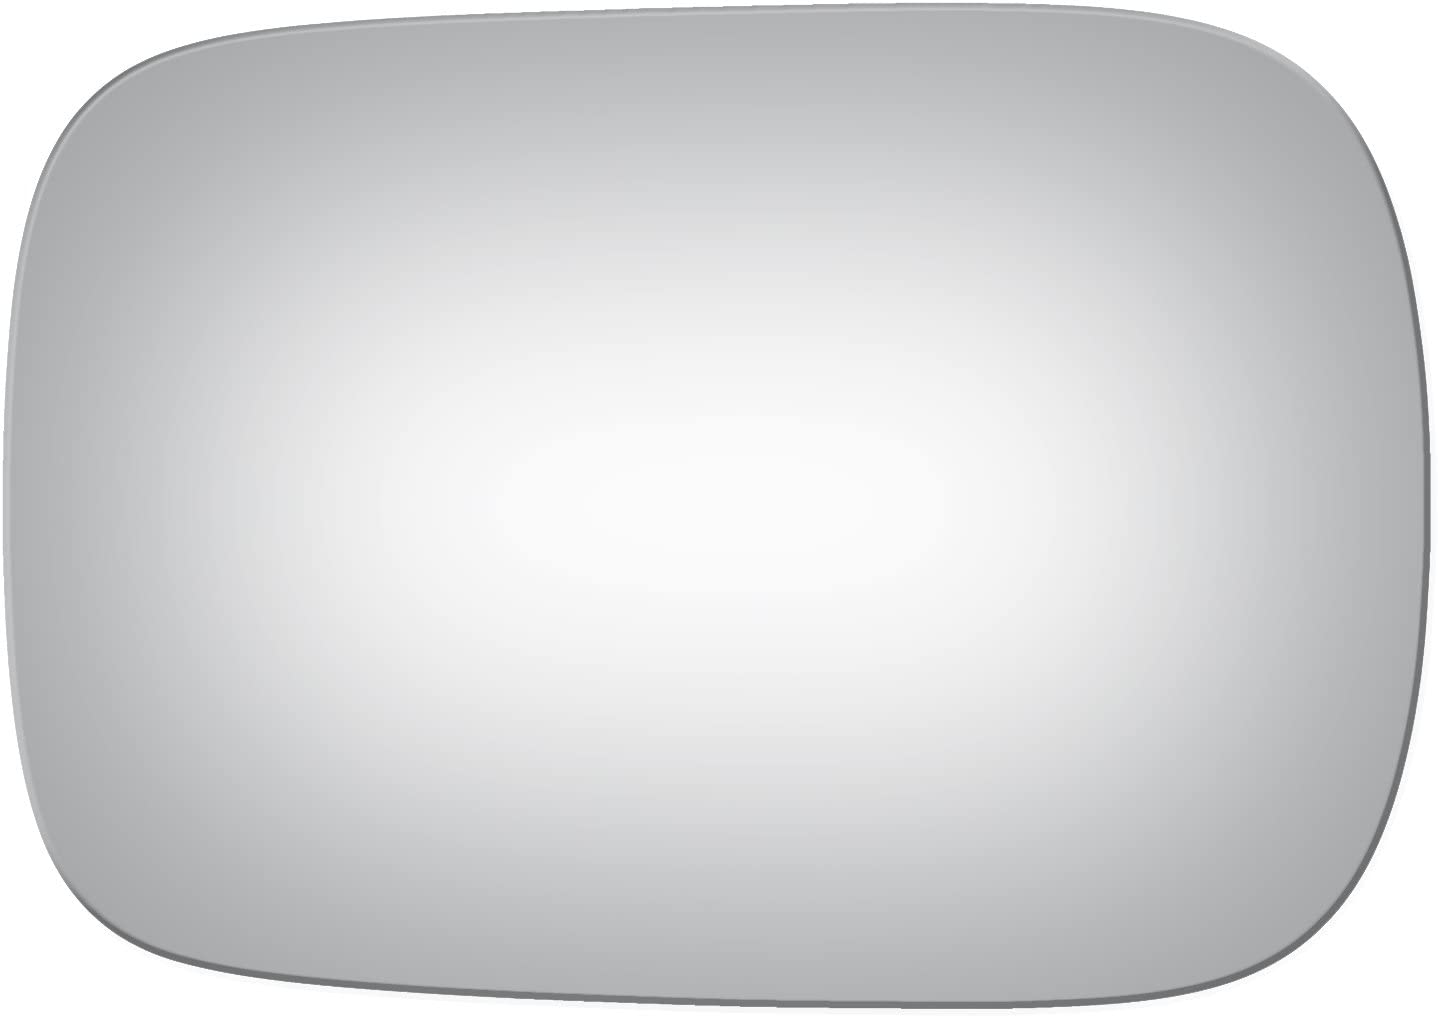 Burco 2950 Flat Driver Side Replacement Mirror Glass for 2001-2003 Volvo V70 2003-2006 Volvo XC90 Mount Not Included 2003-2007 Volvo XC70